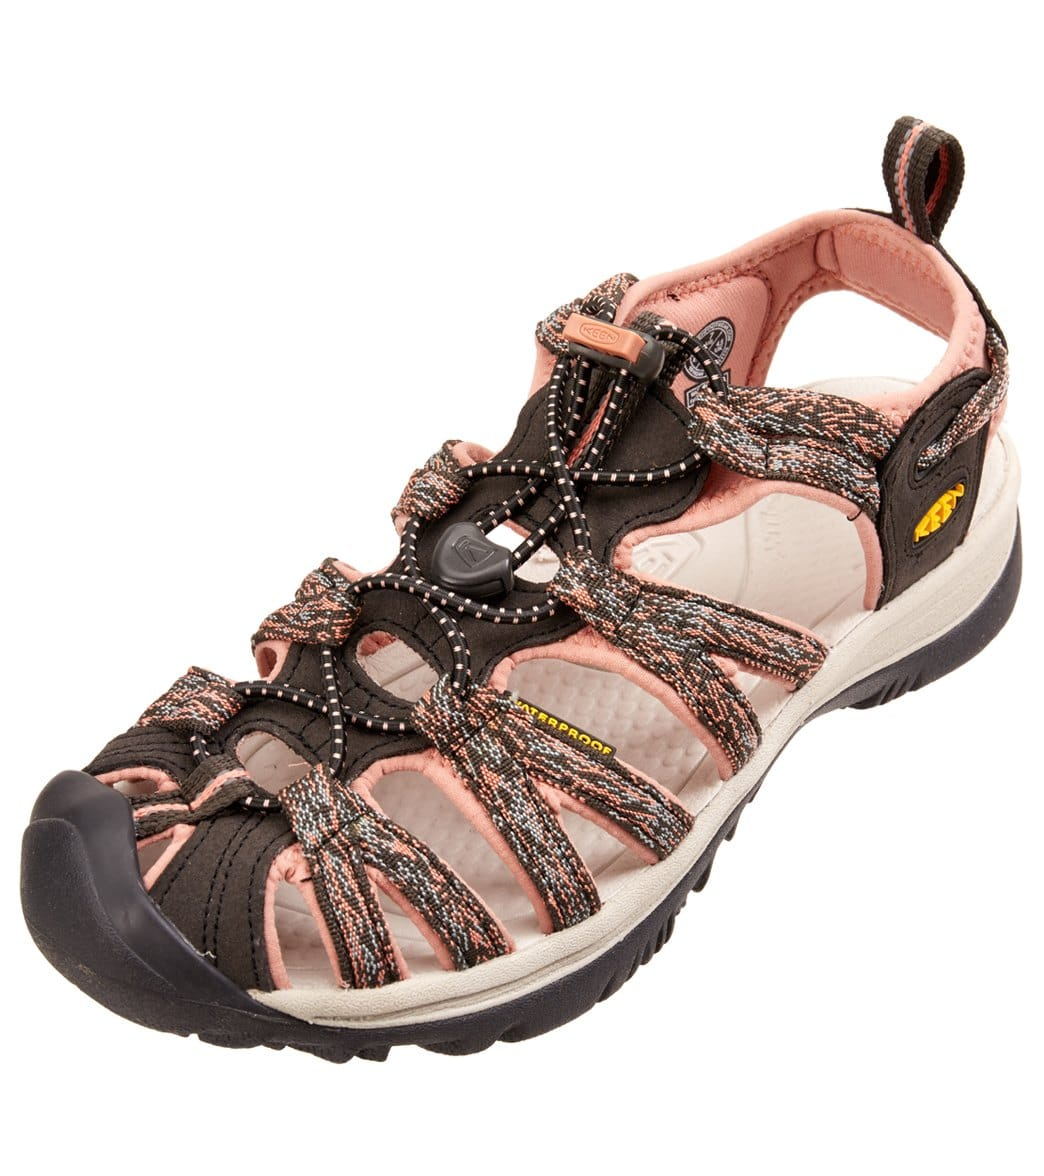 00002dea3240 Keen Women s Whisper Water Shoes at SwimOutlet.com - Free Shipping